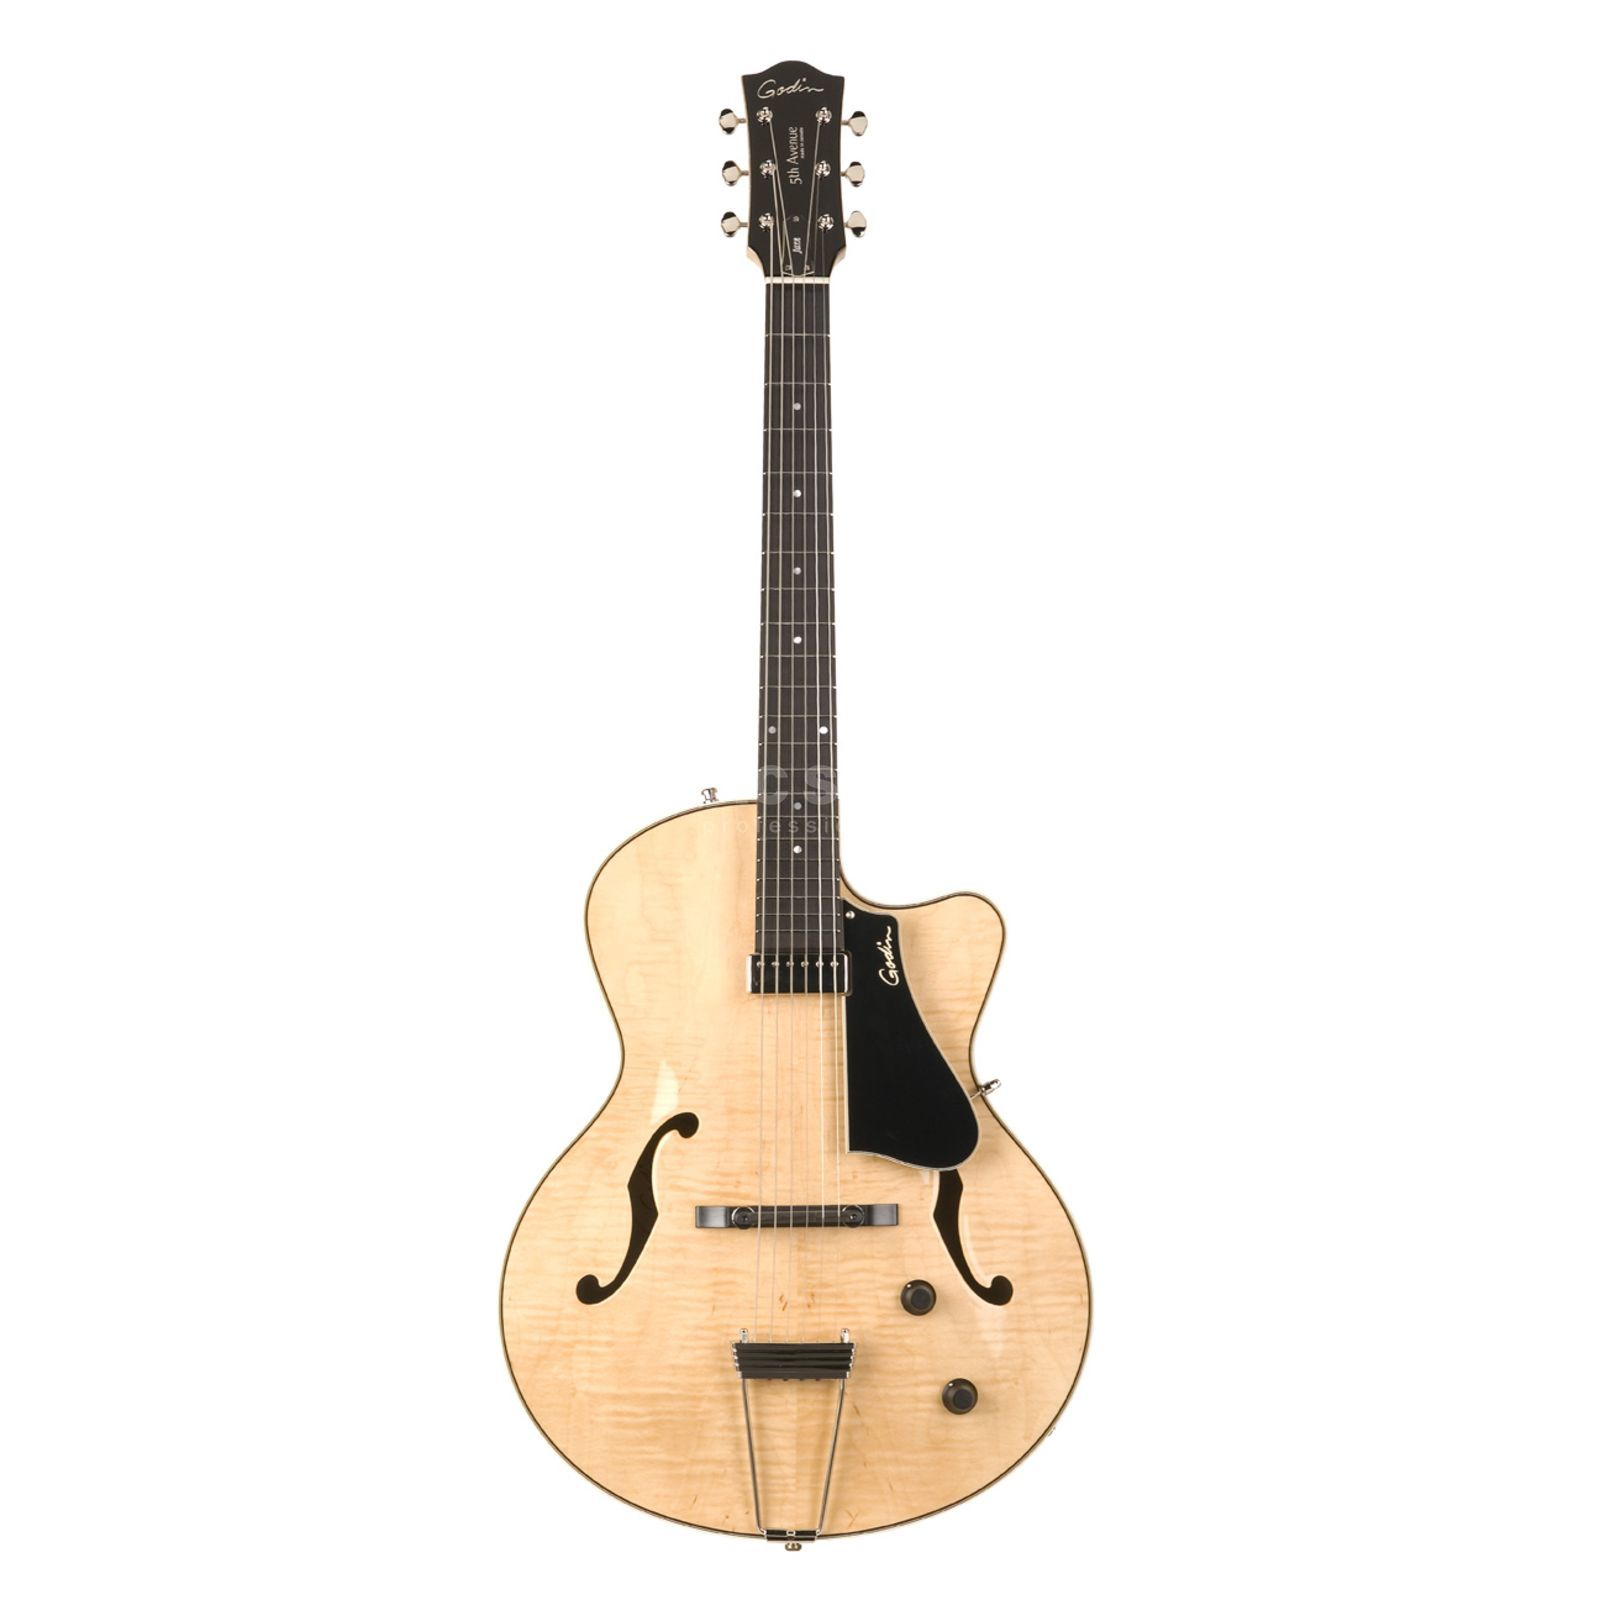 Godin 5th Avenue Jazz Archtop Acoust ic Guitar, Natural   Produktbillede